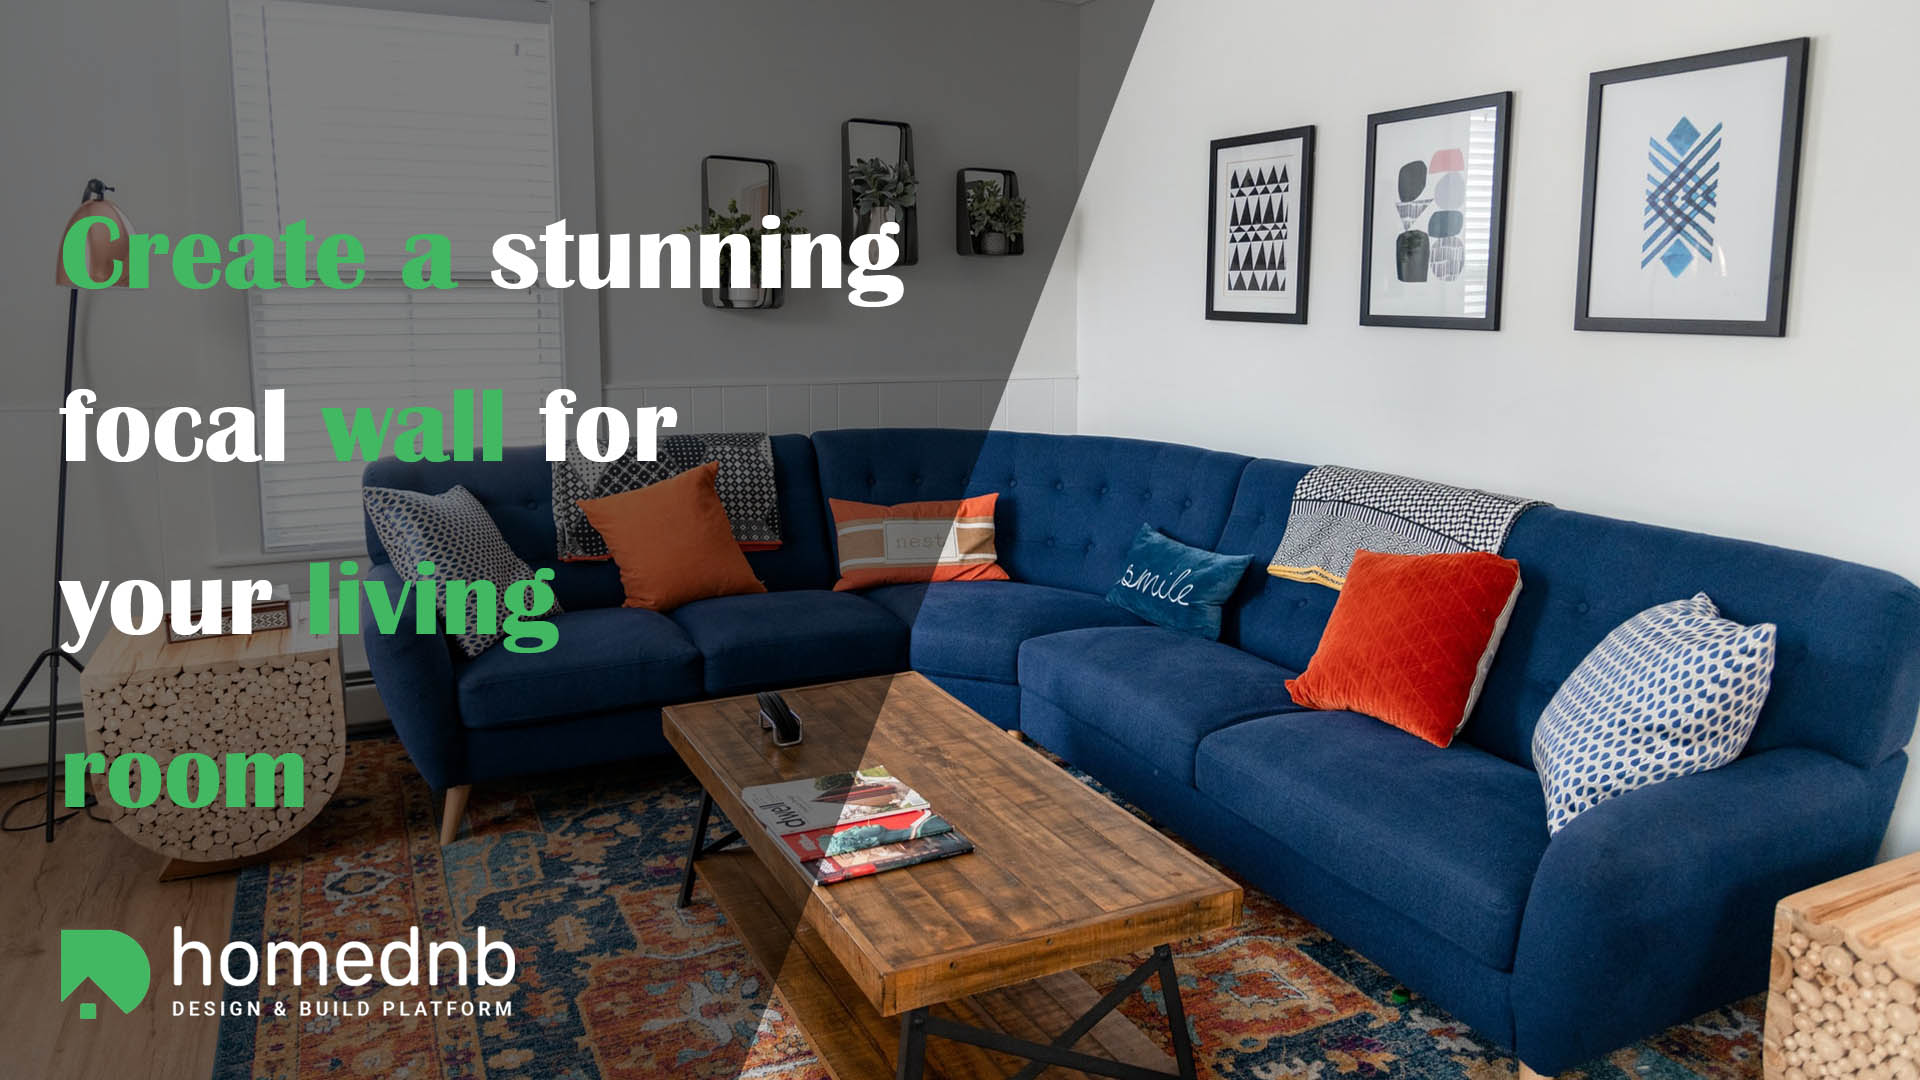 Create a stunning focal wall for your living room